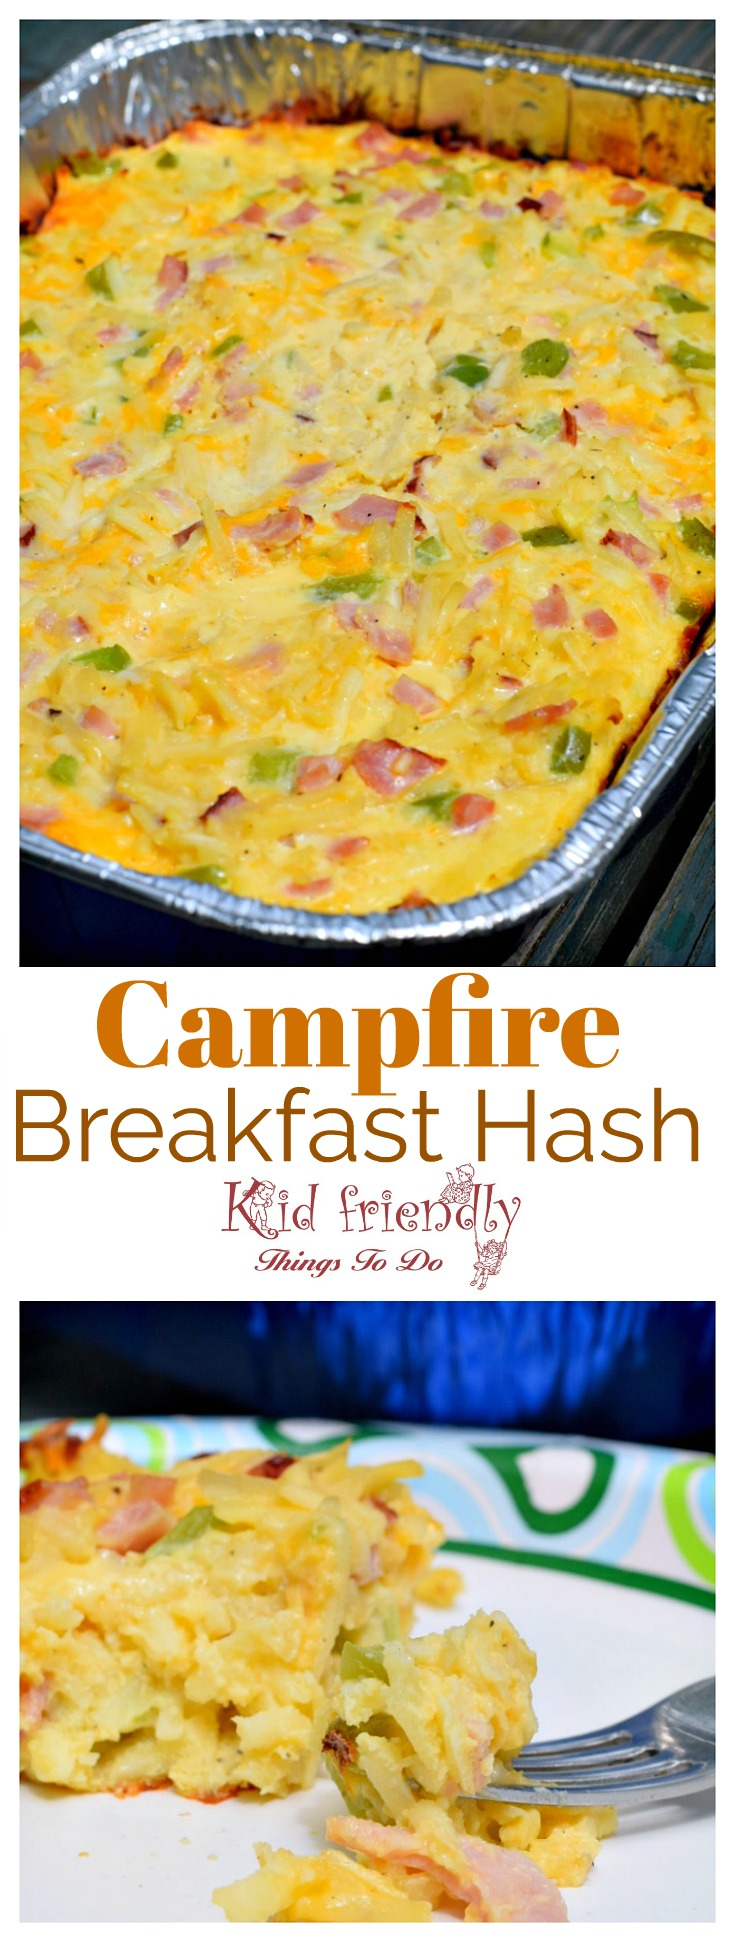 Easy Make Ahead Western Skillet Campfire Breakfast Recipe - Cowboy Breakfast Western Skillet recipe for the camping family breakfast - www.kidfriendlythingstodo.com